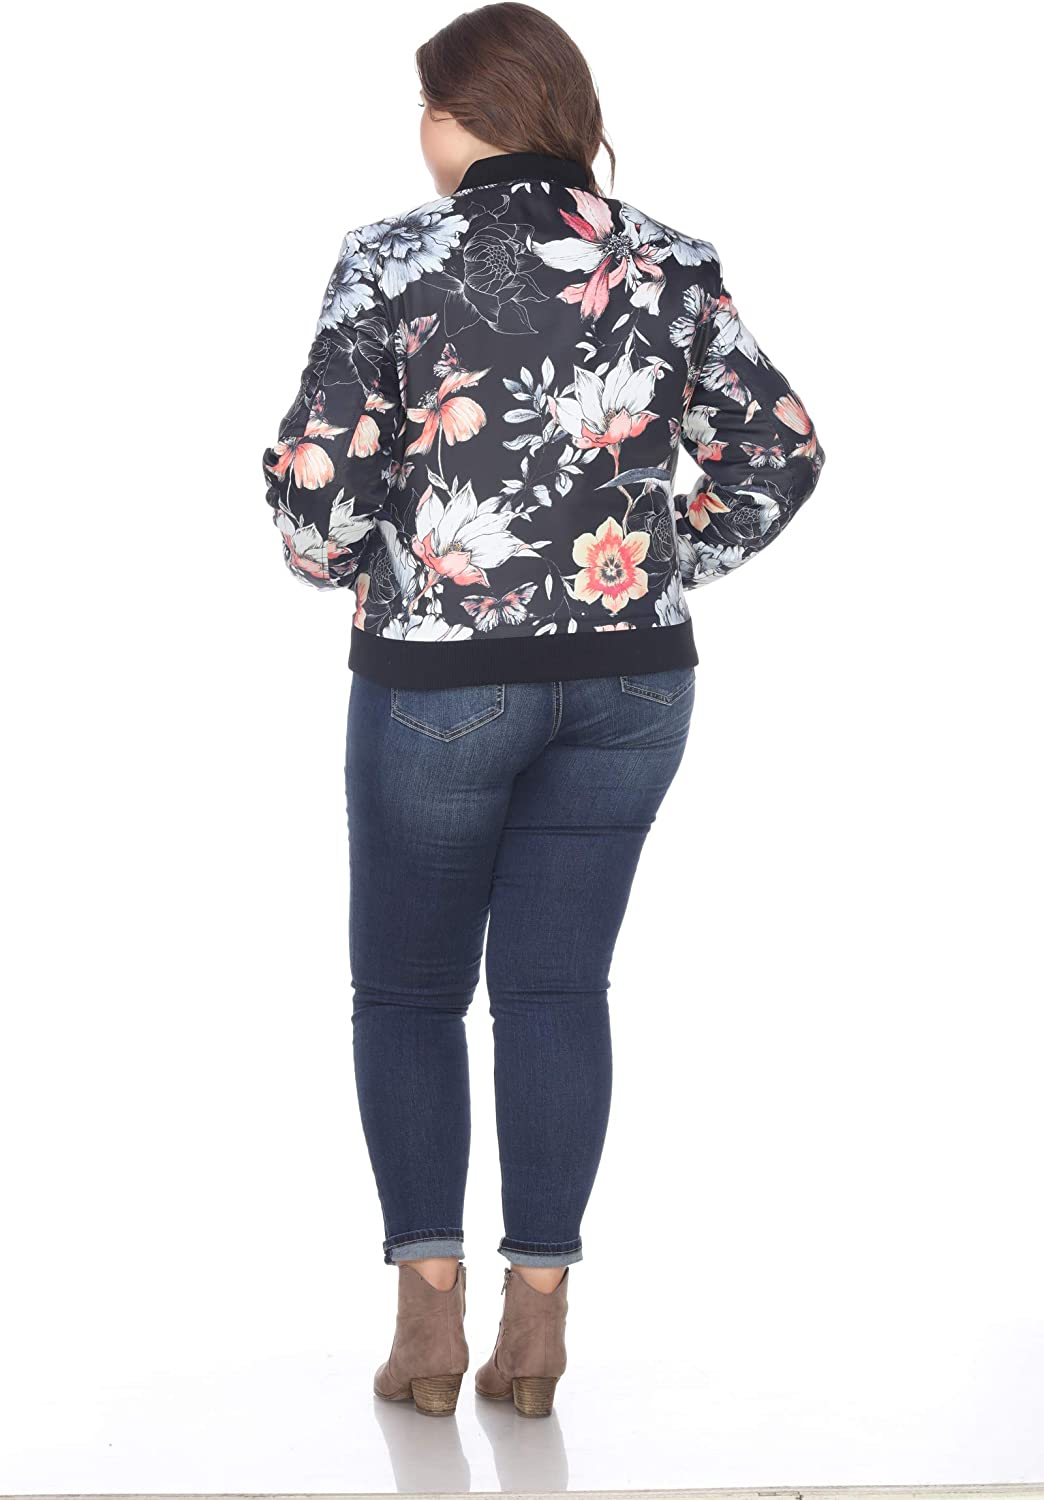 Women's Plus Size Classic Bomber Jacket with Zipper and Design